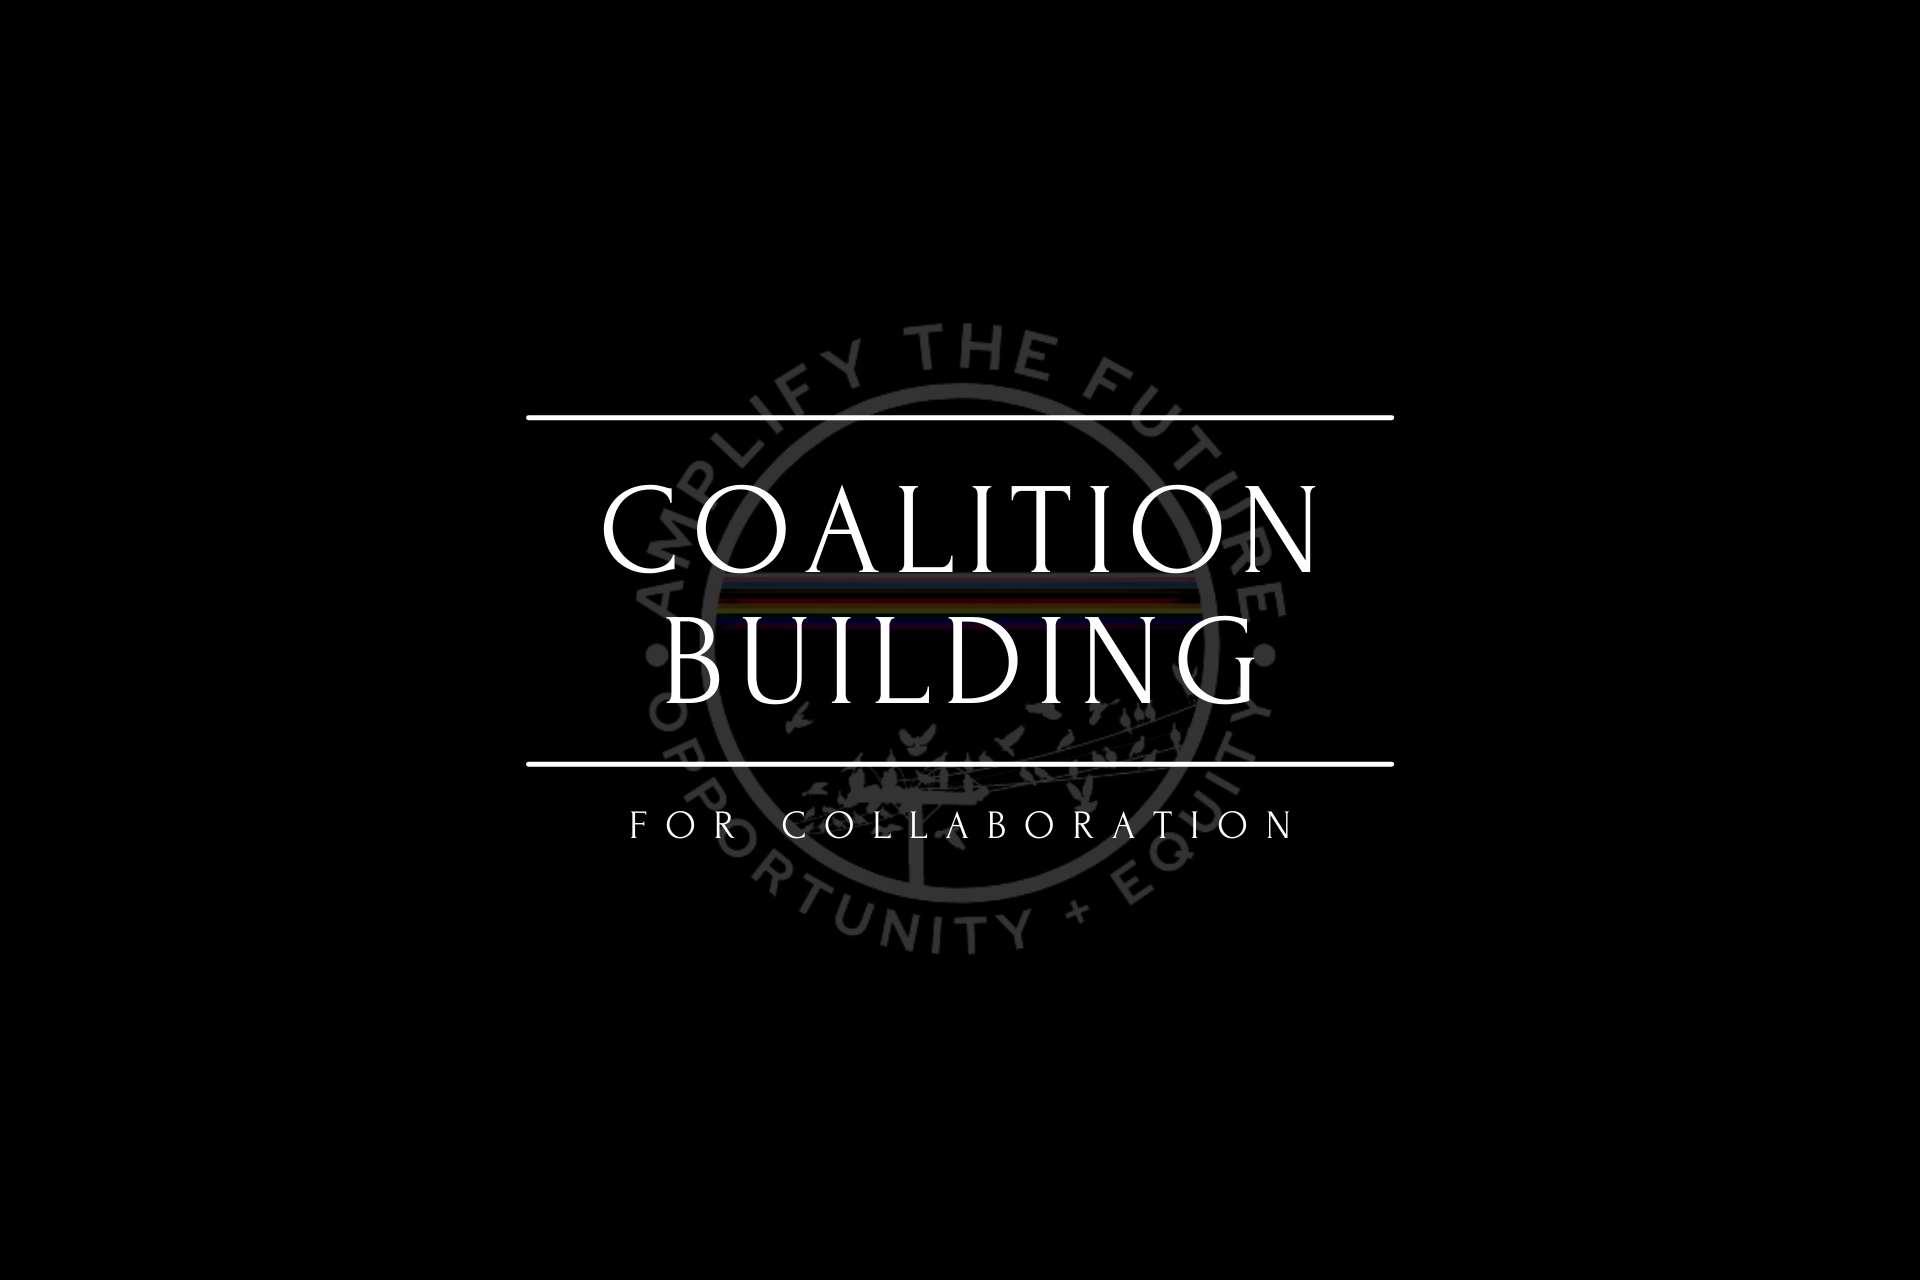 Text: Coalition Building: For Collaboration